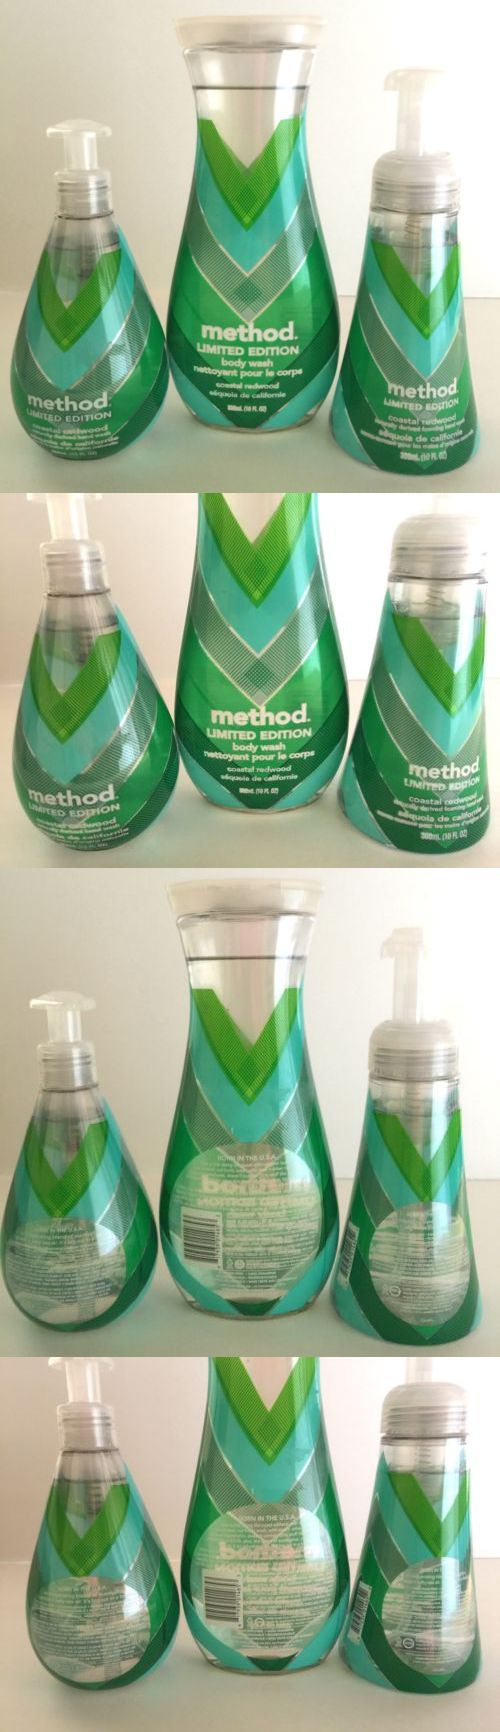 Hand Washes: Method Collection Coastal Redwood Foaming Hand Soap Shower Gel Set -> BUY IT NOW ONLY: $47.99 on eBay!